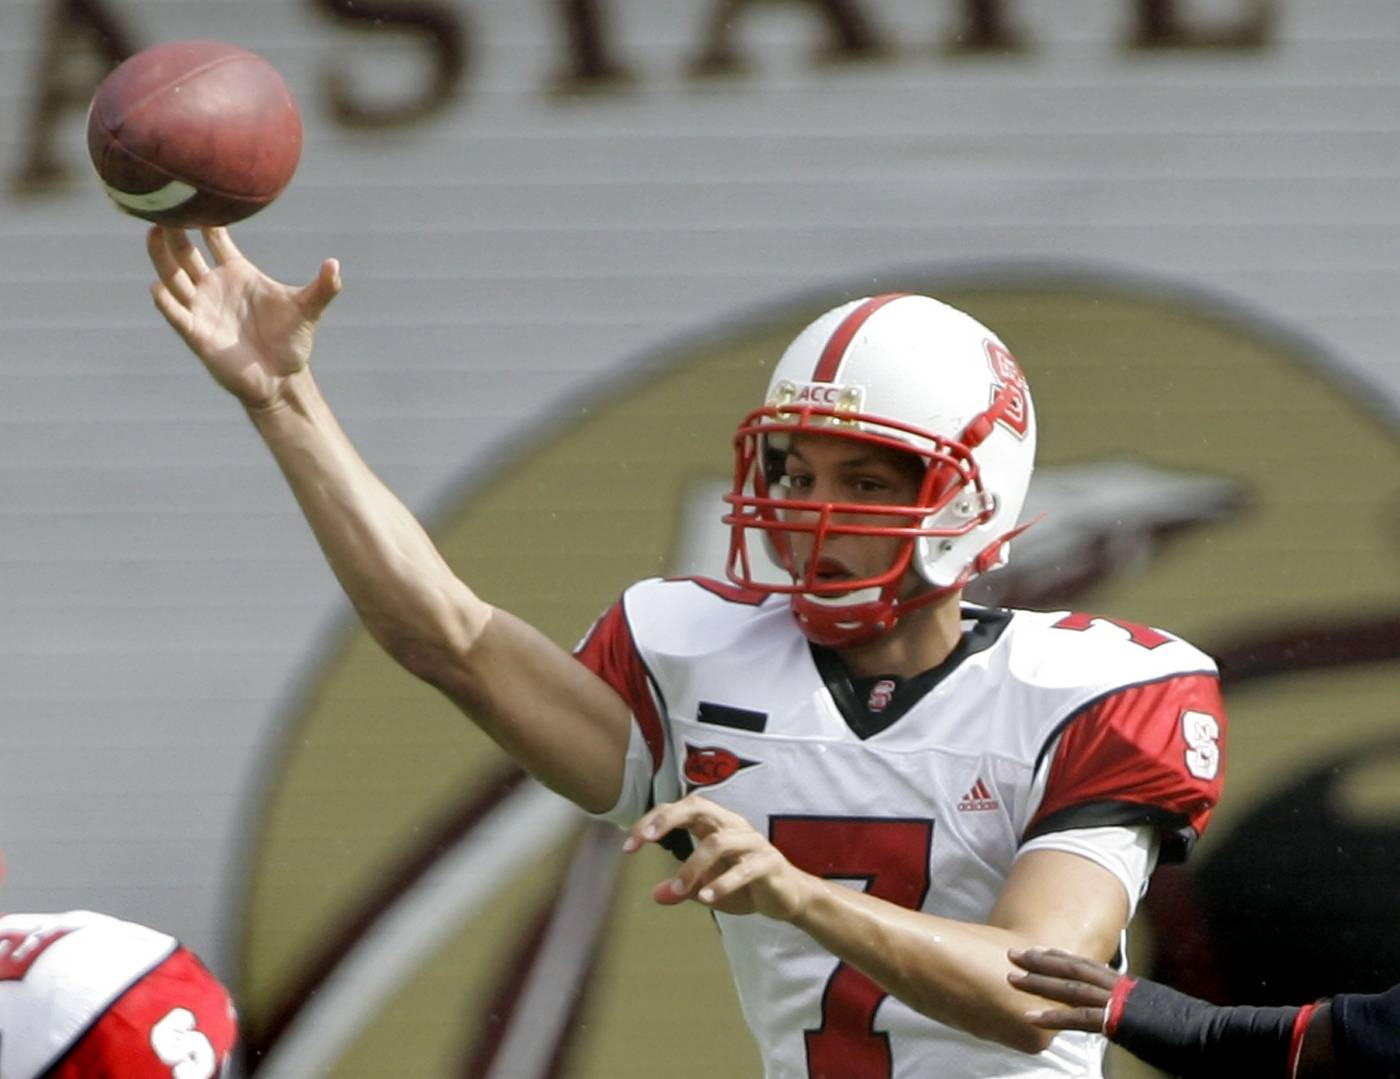 North Carolina State quarterback Daniel Evans throws a first-quarter pass. (AP Photo/Phil Coale)